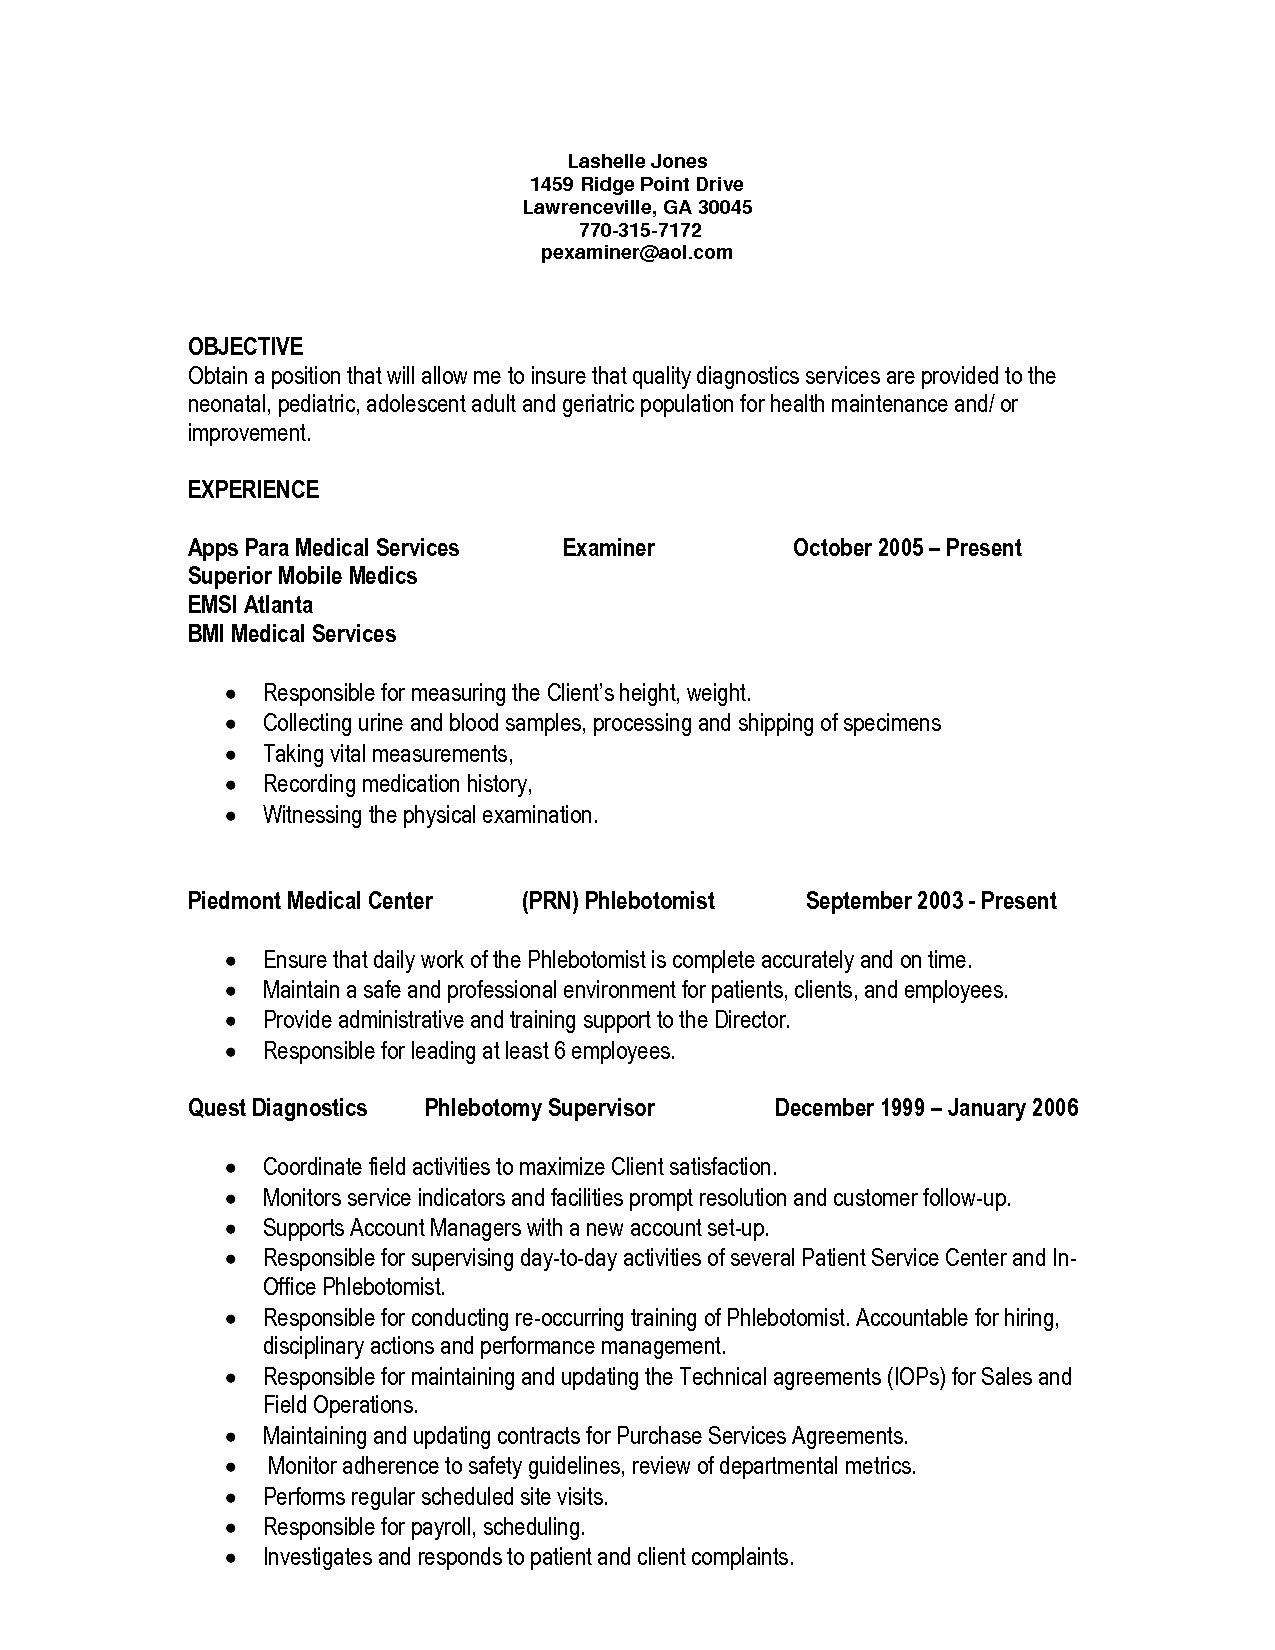 qualifications resume phlebotomist sample entry level phlebotomy skills assistant cover letter samples